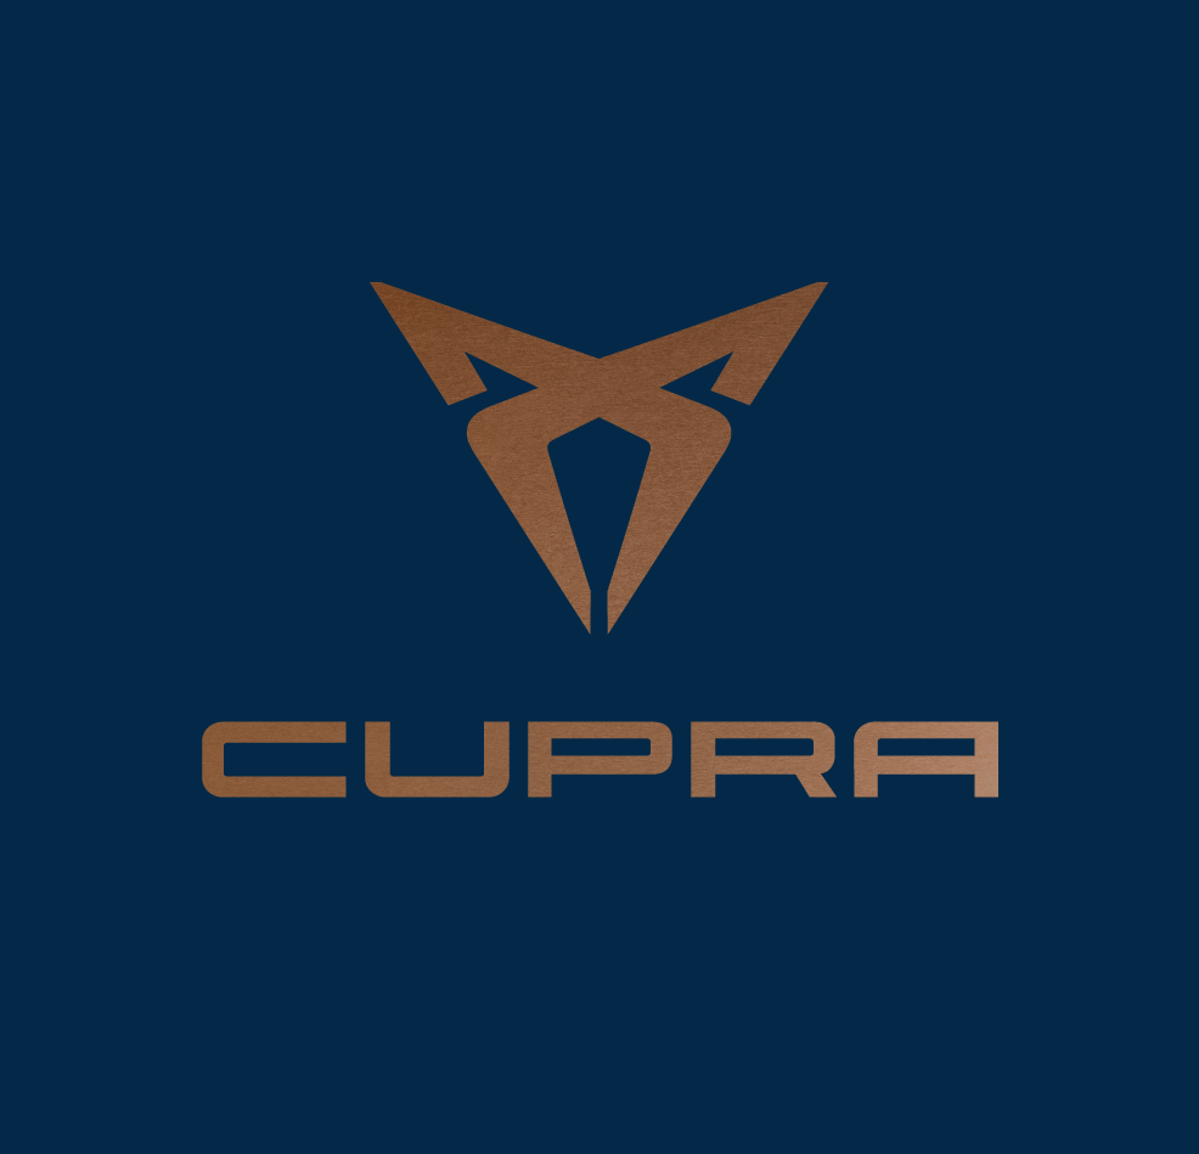 The new SEAT CUpra logo which is a gold symbol on a midnight blue background